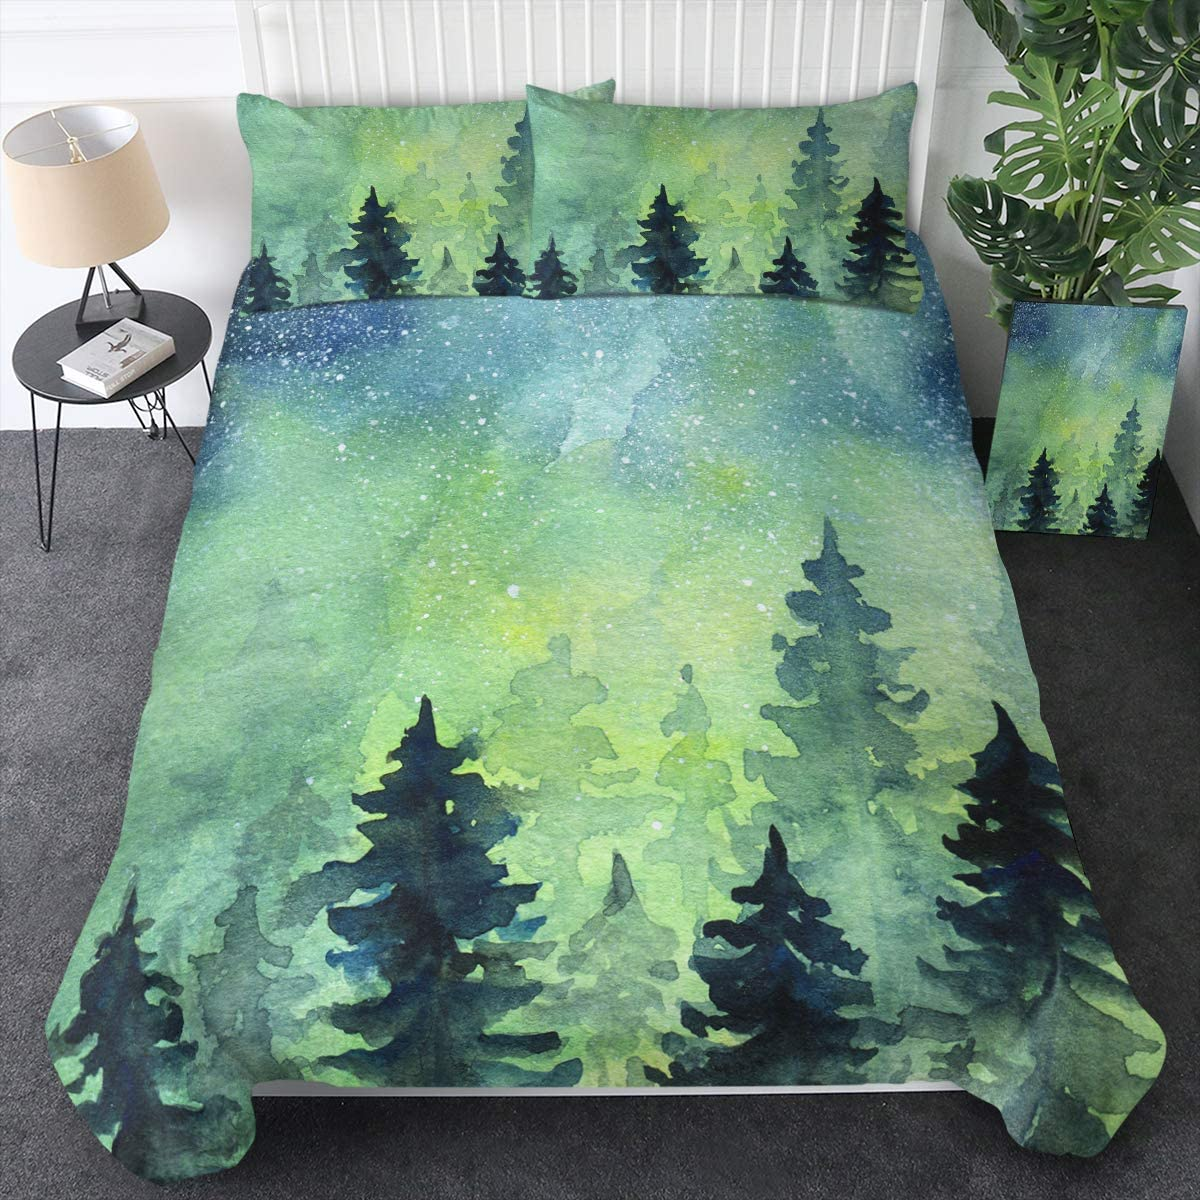 Sales of SALE items from new Popularity works Sleepwish Frost Space Duvet Cover G Watercolor Bedding Tree Pine